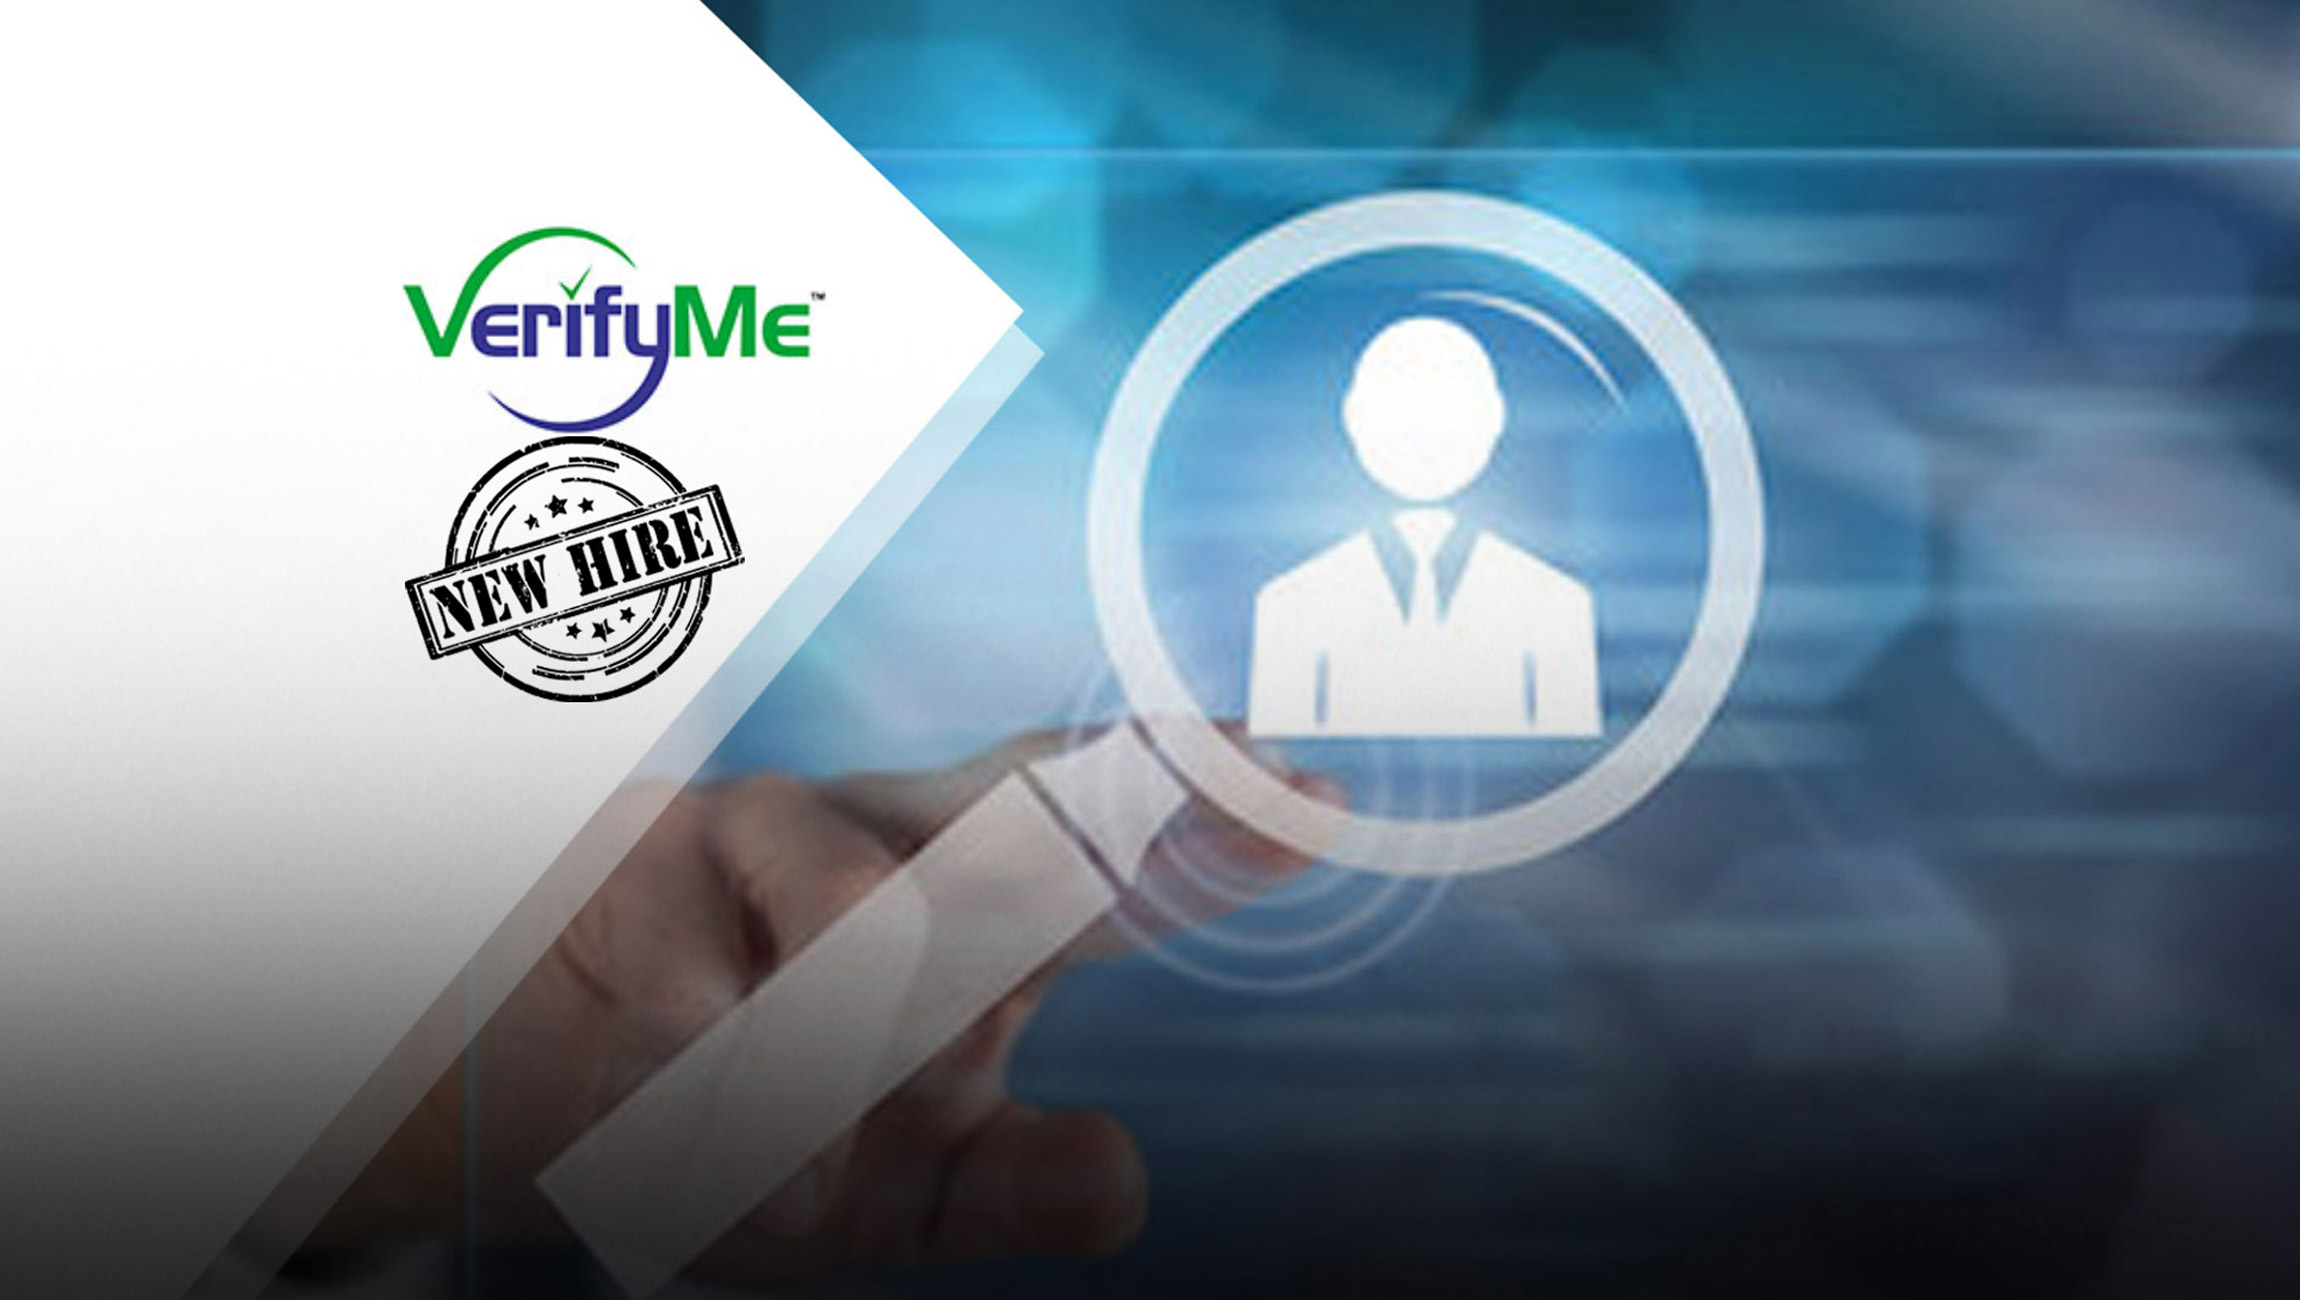 VerifyMe Appoints Proven Sales Leader David Sandello as Director of Sales & Business Development of North America